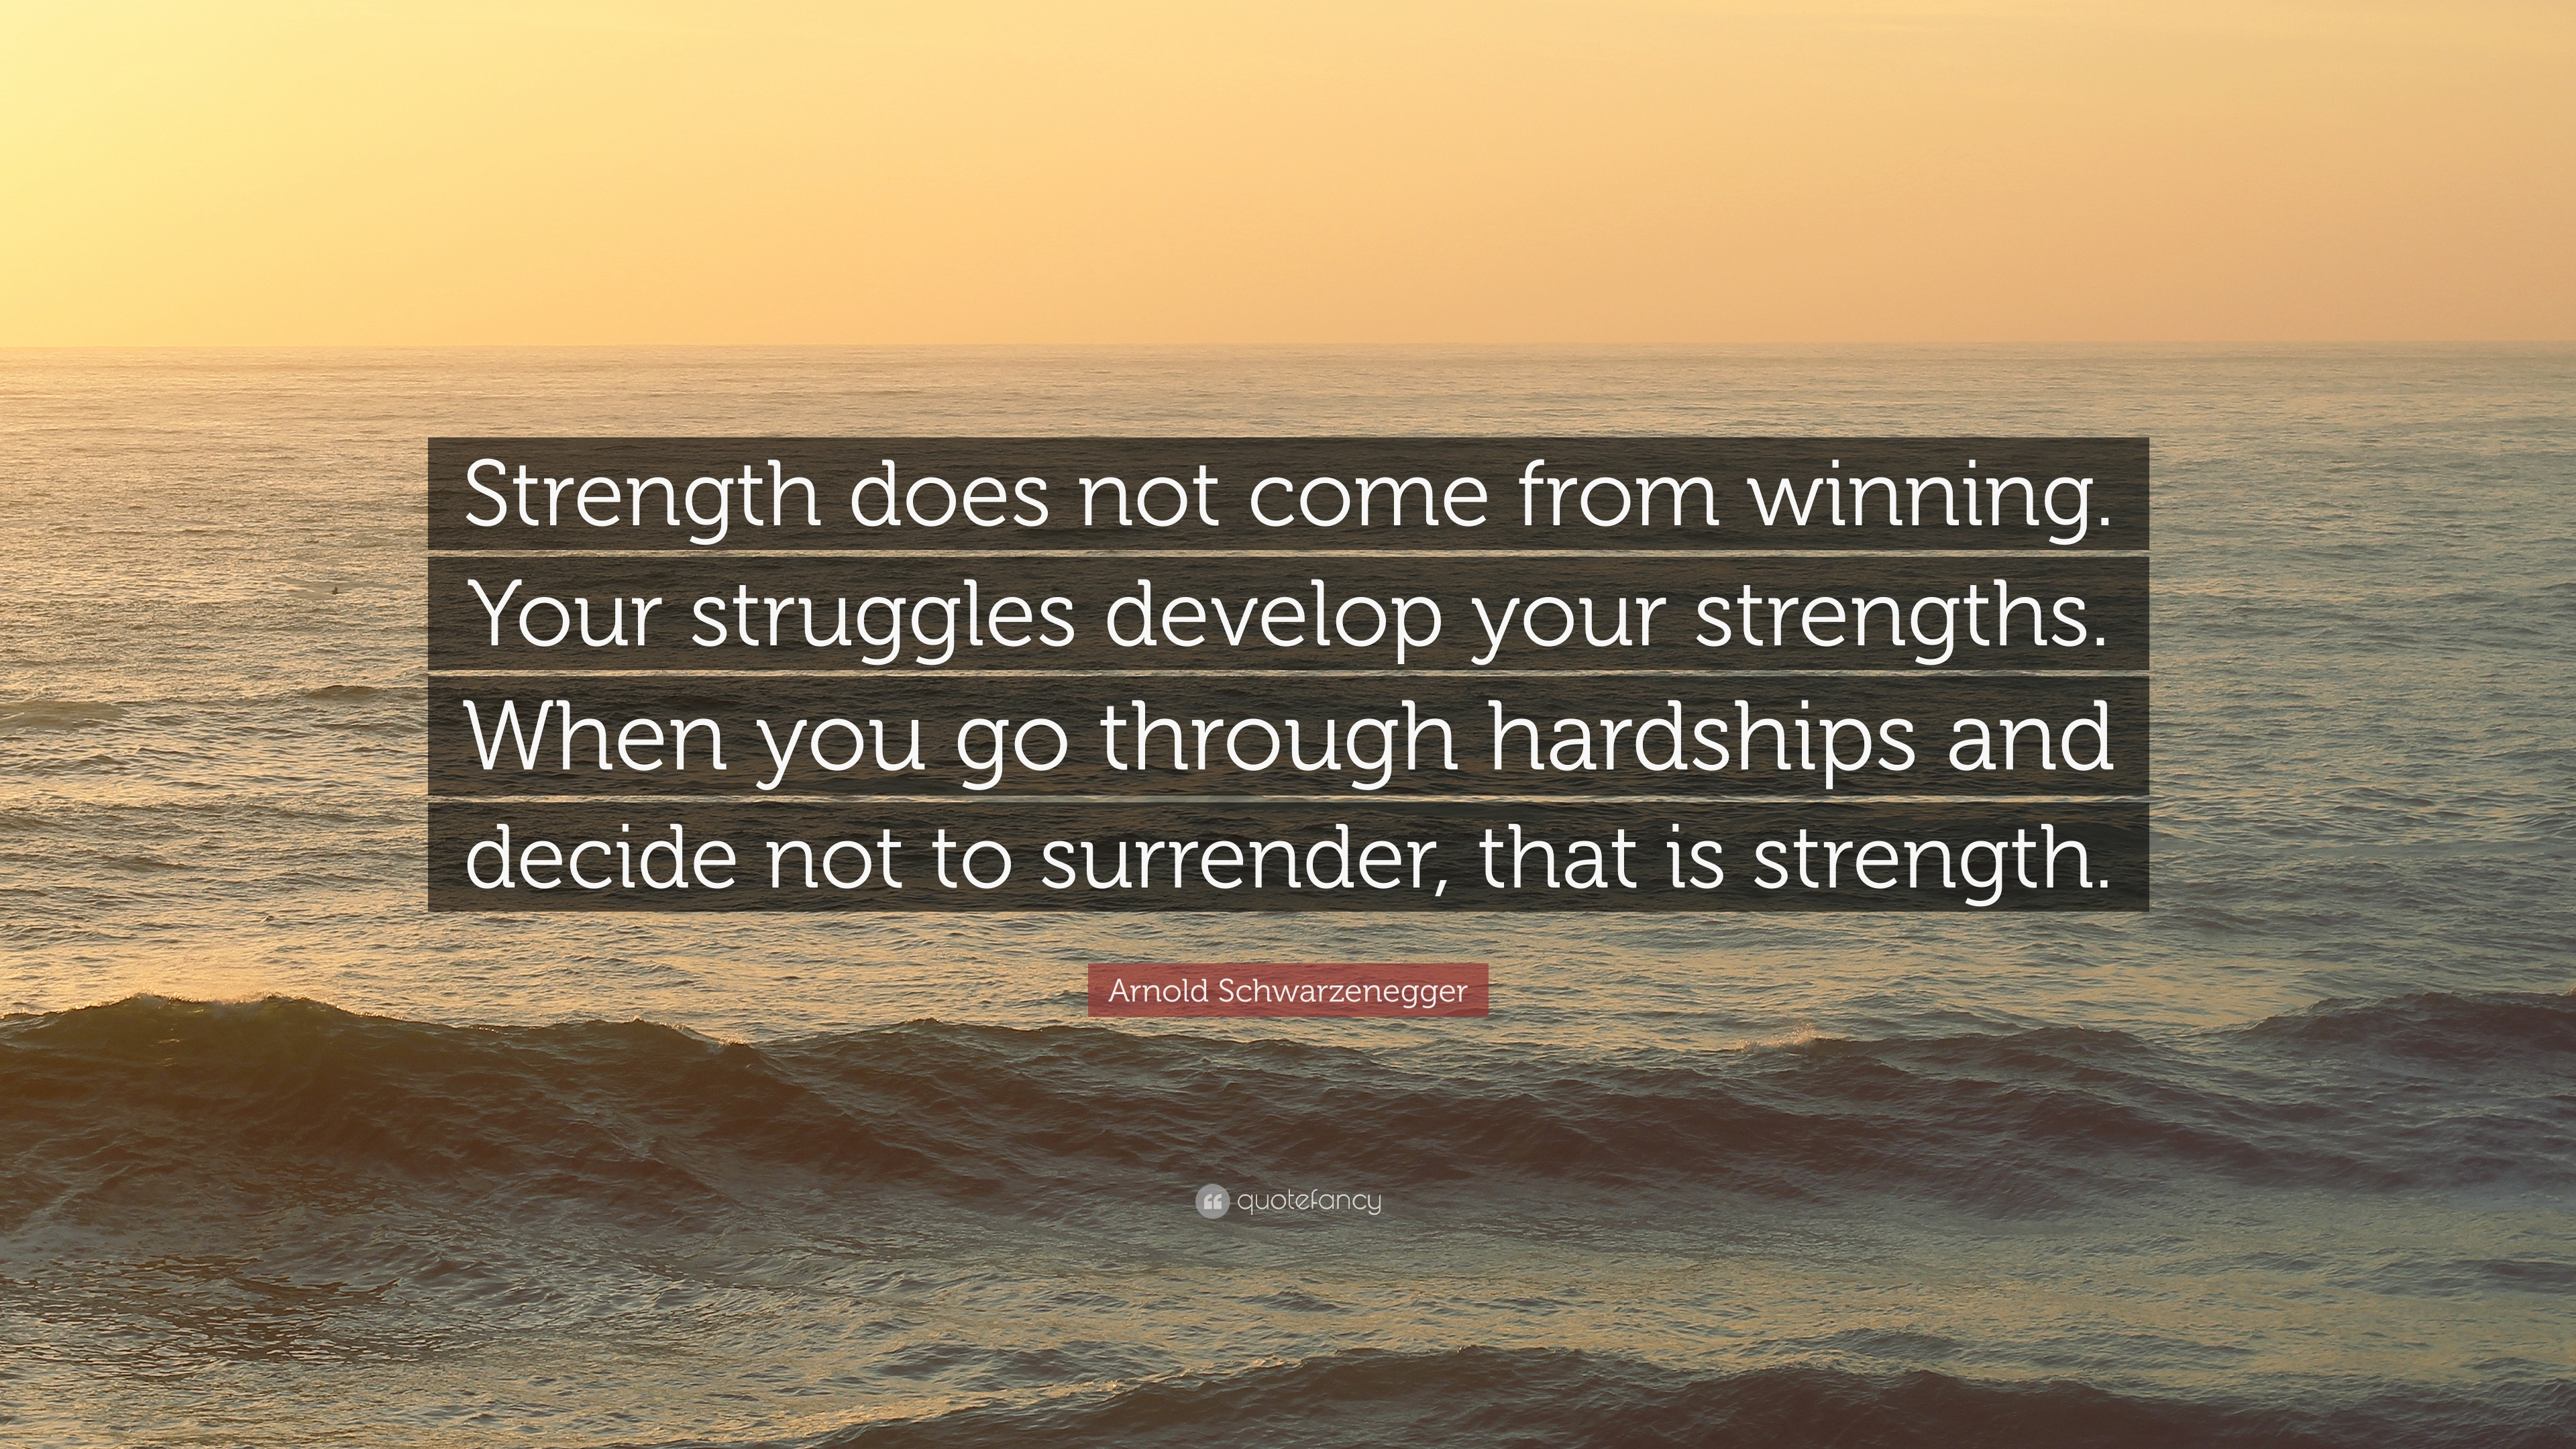 Arnold schwarzenegger quote strength does not come from winning your struggles develop your